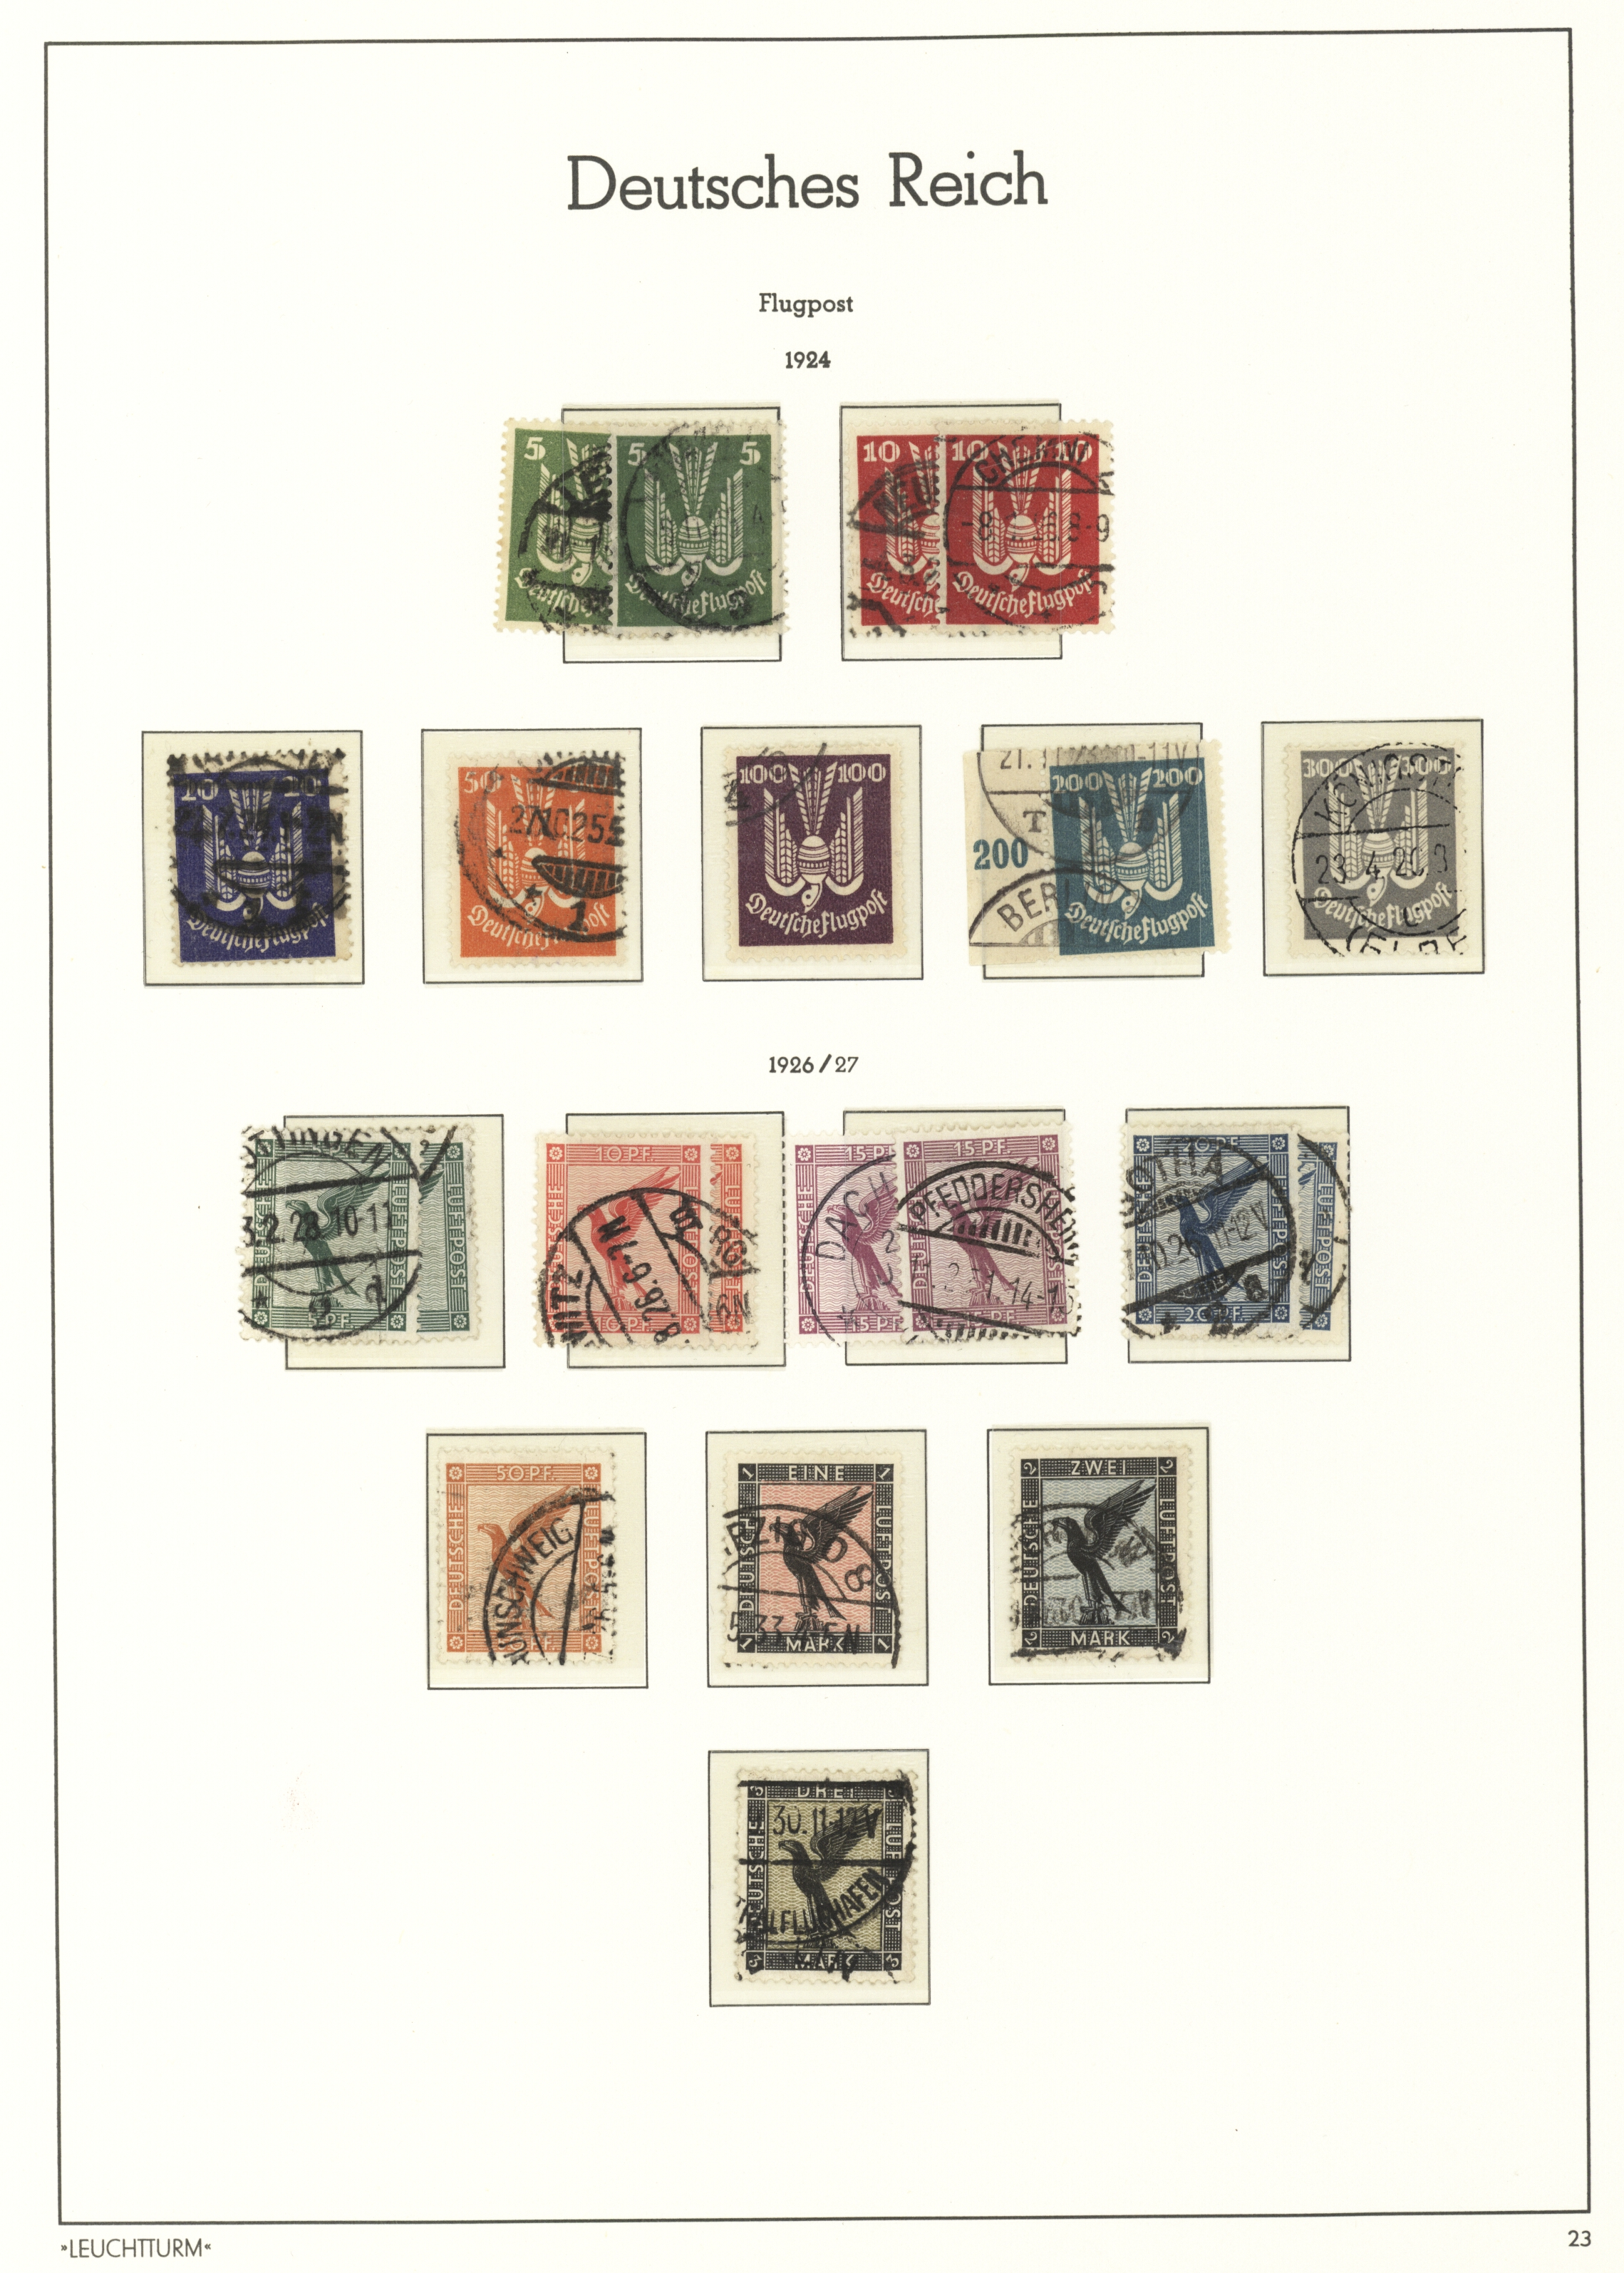 Lot 36450 - Deutsches Reich  -  Auktionshaus Christoph Gärtner GmbH & Co. KG Sale #44 Collections Germany